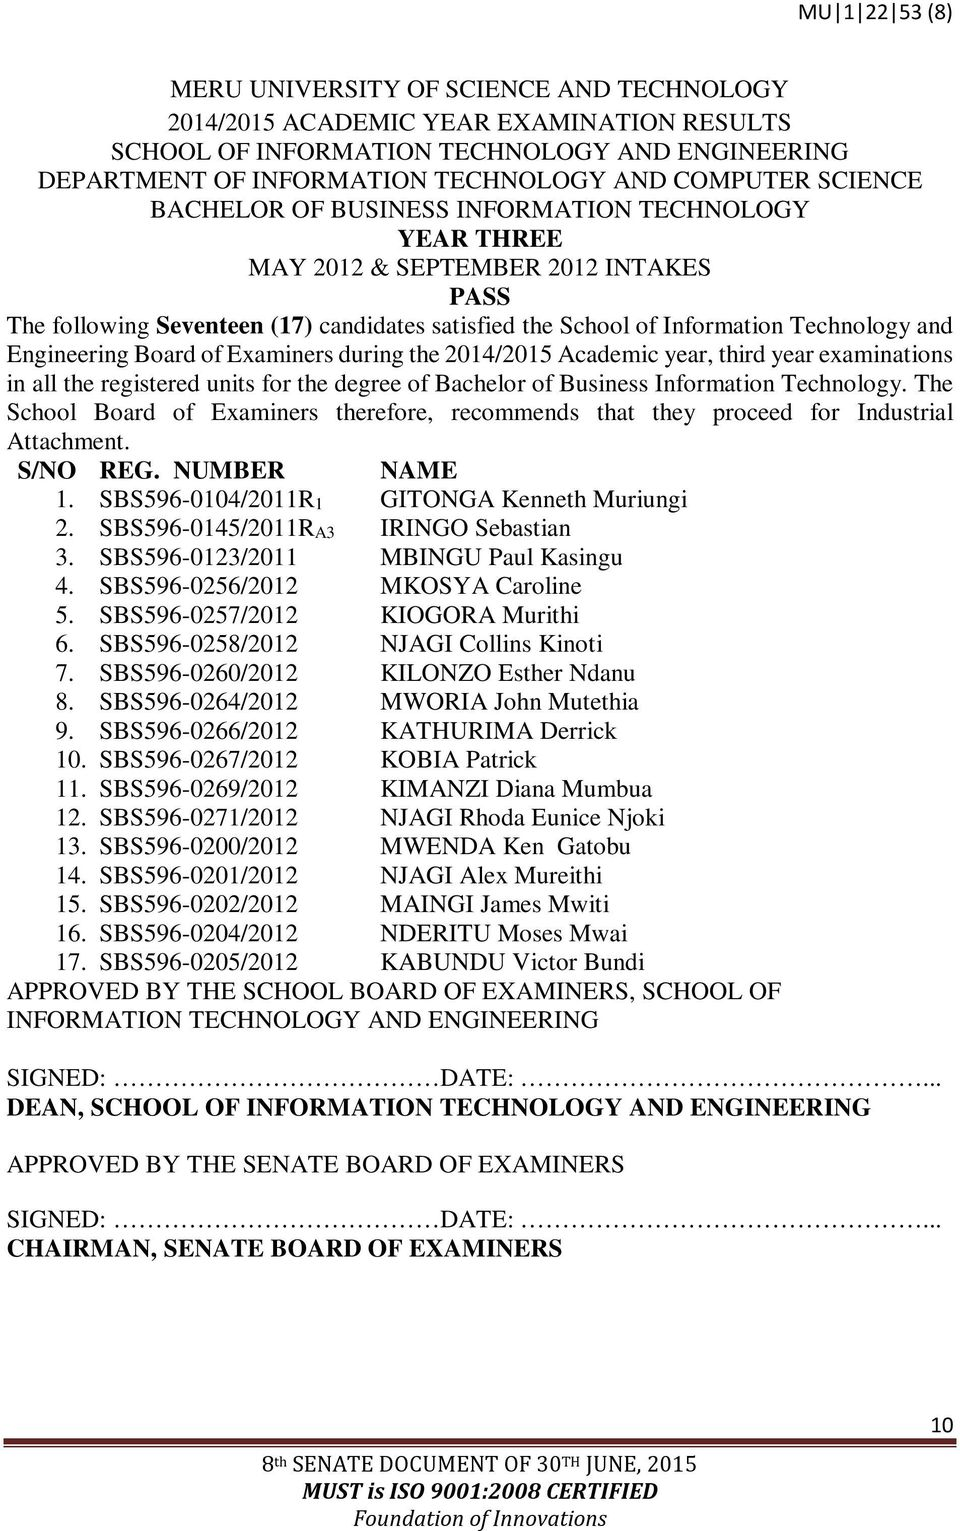 Information Technology. The School Board of Examiners therefore, recommends that they proceed for Industrial Attachment. S/NO REG. NUMBER NAME 1. SBS596-0104/2011R1 GITONGA Kenneth Muriungi 2.